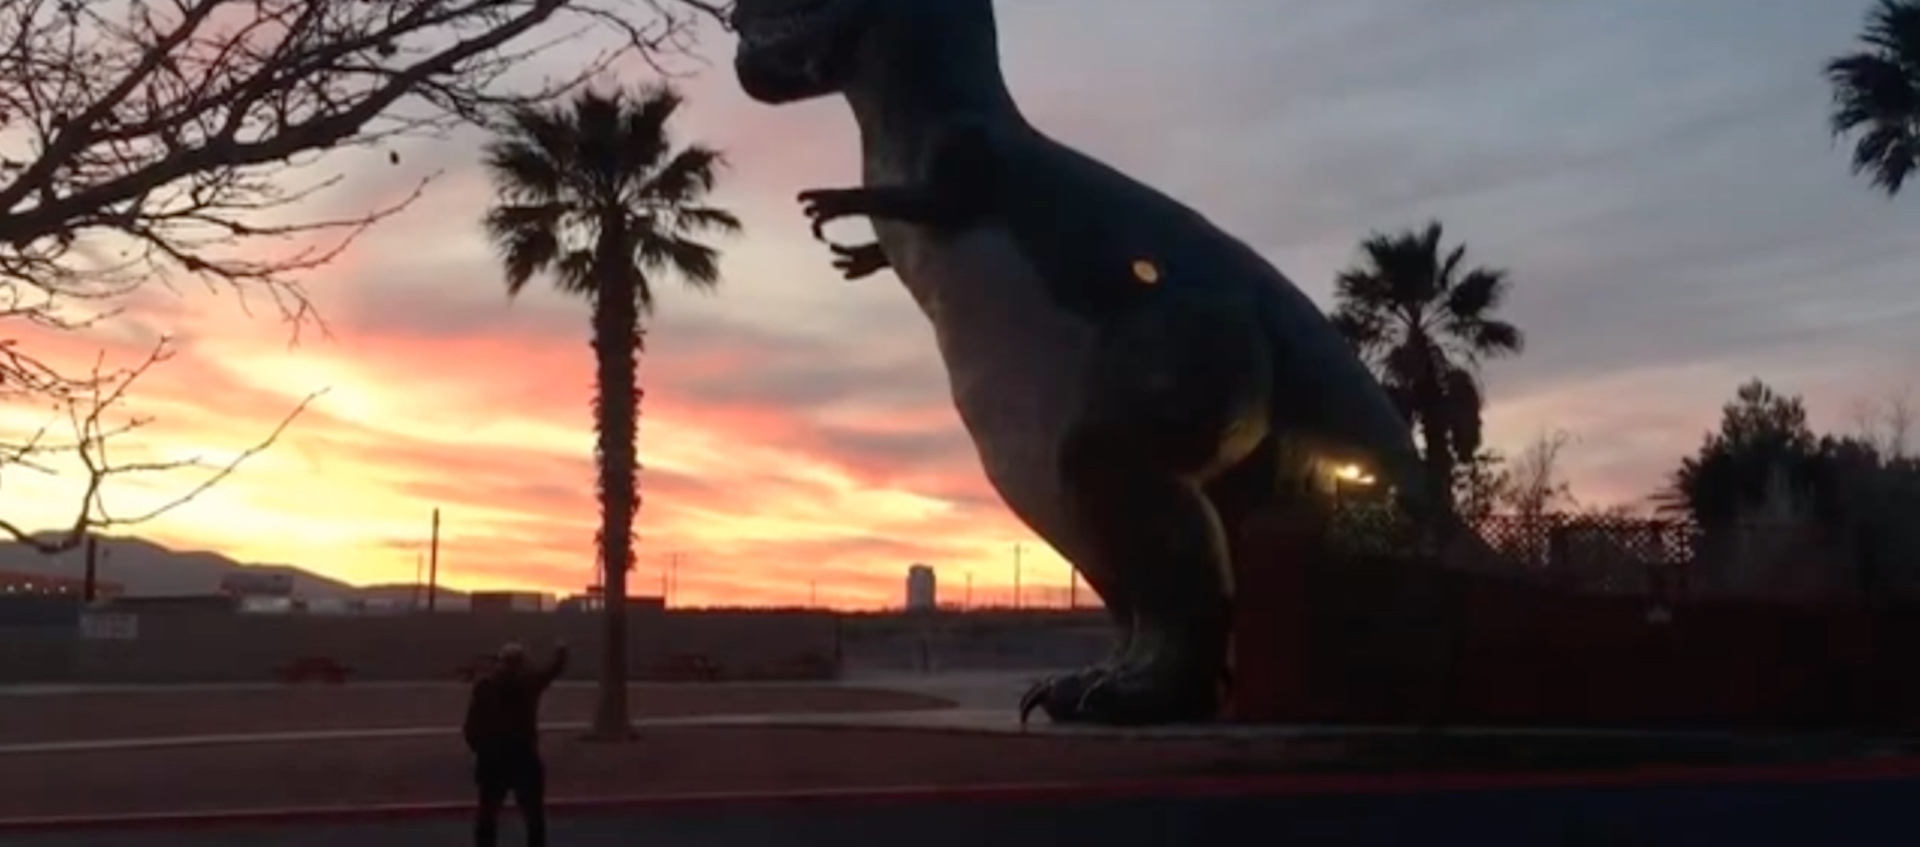 "The back of Wexner Center Assistant Film/Video Curator Chris Stults as he waves goodbye to the setting sun at the California site of the Cabazon dinosaurs, for Layla Muchnik-Benali's video project ""waving goodbye (or hello) to the sun"""